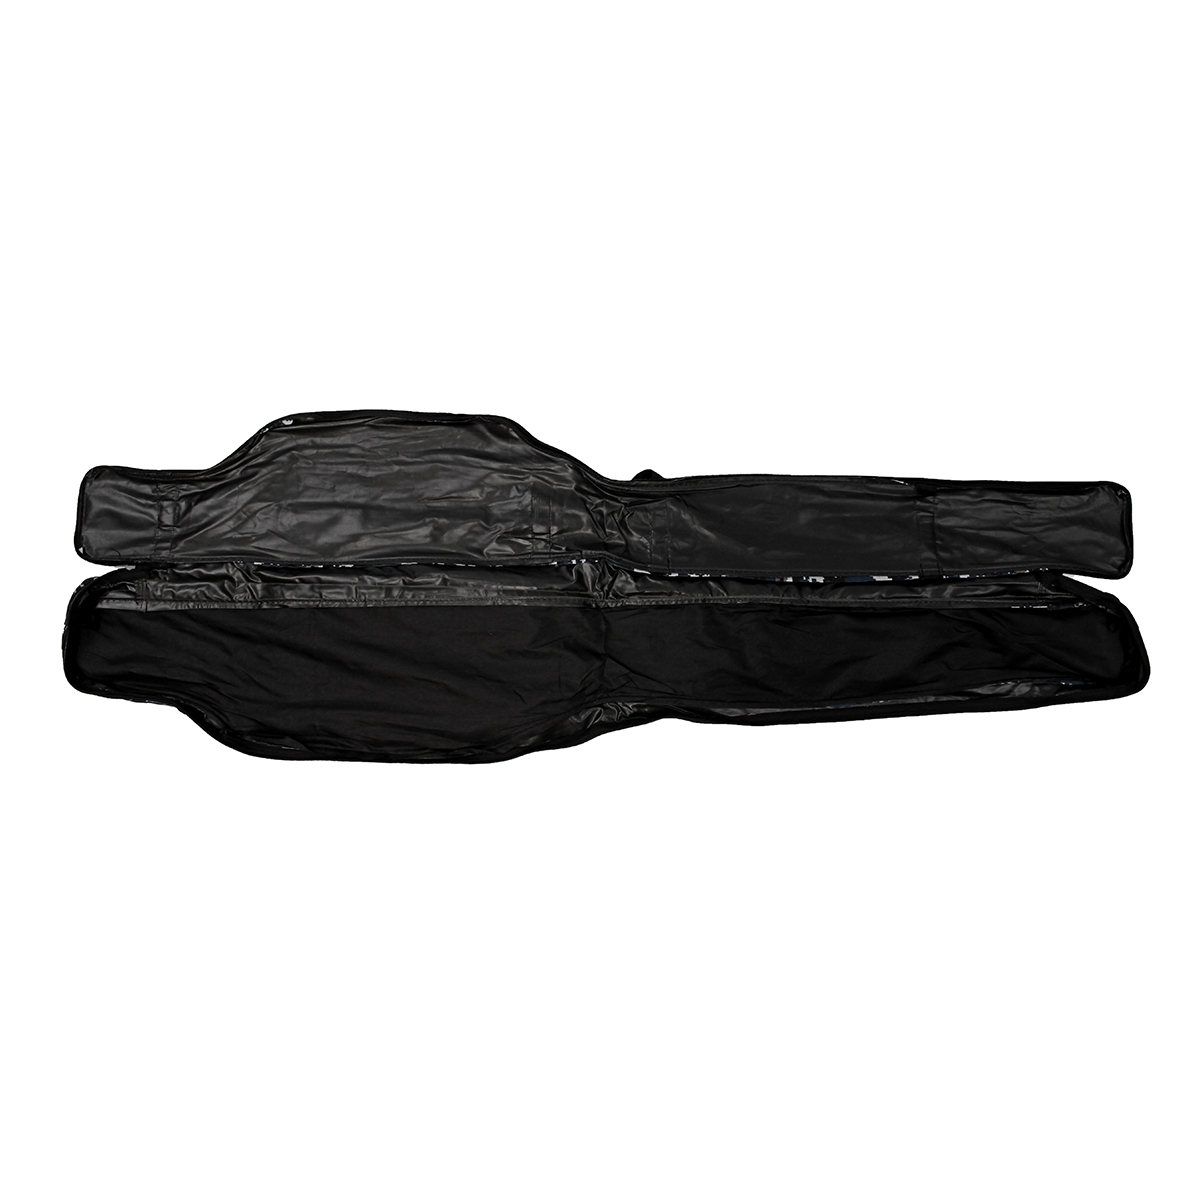 120-150cm Camouflage Portable Fishing Bag Canvas Fishing Pole Storage Bag Case Fishing Gear Tackle